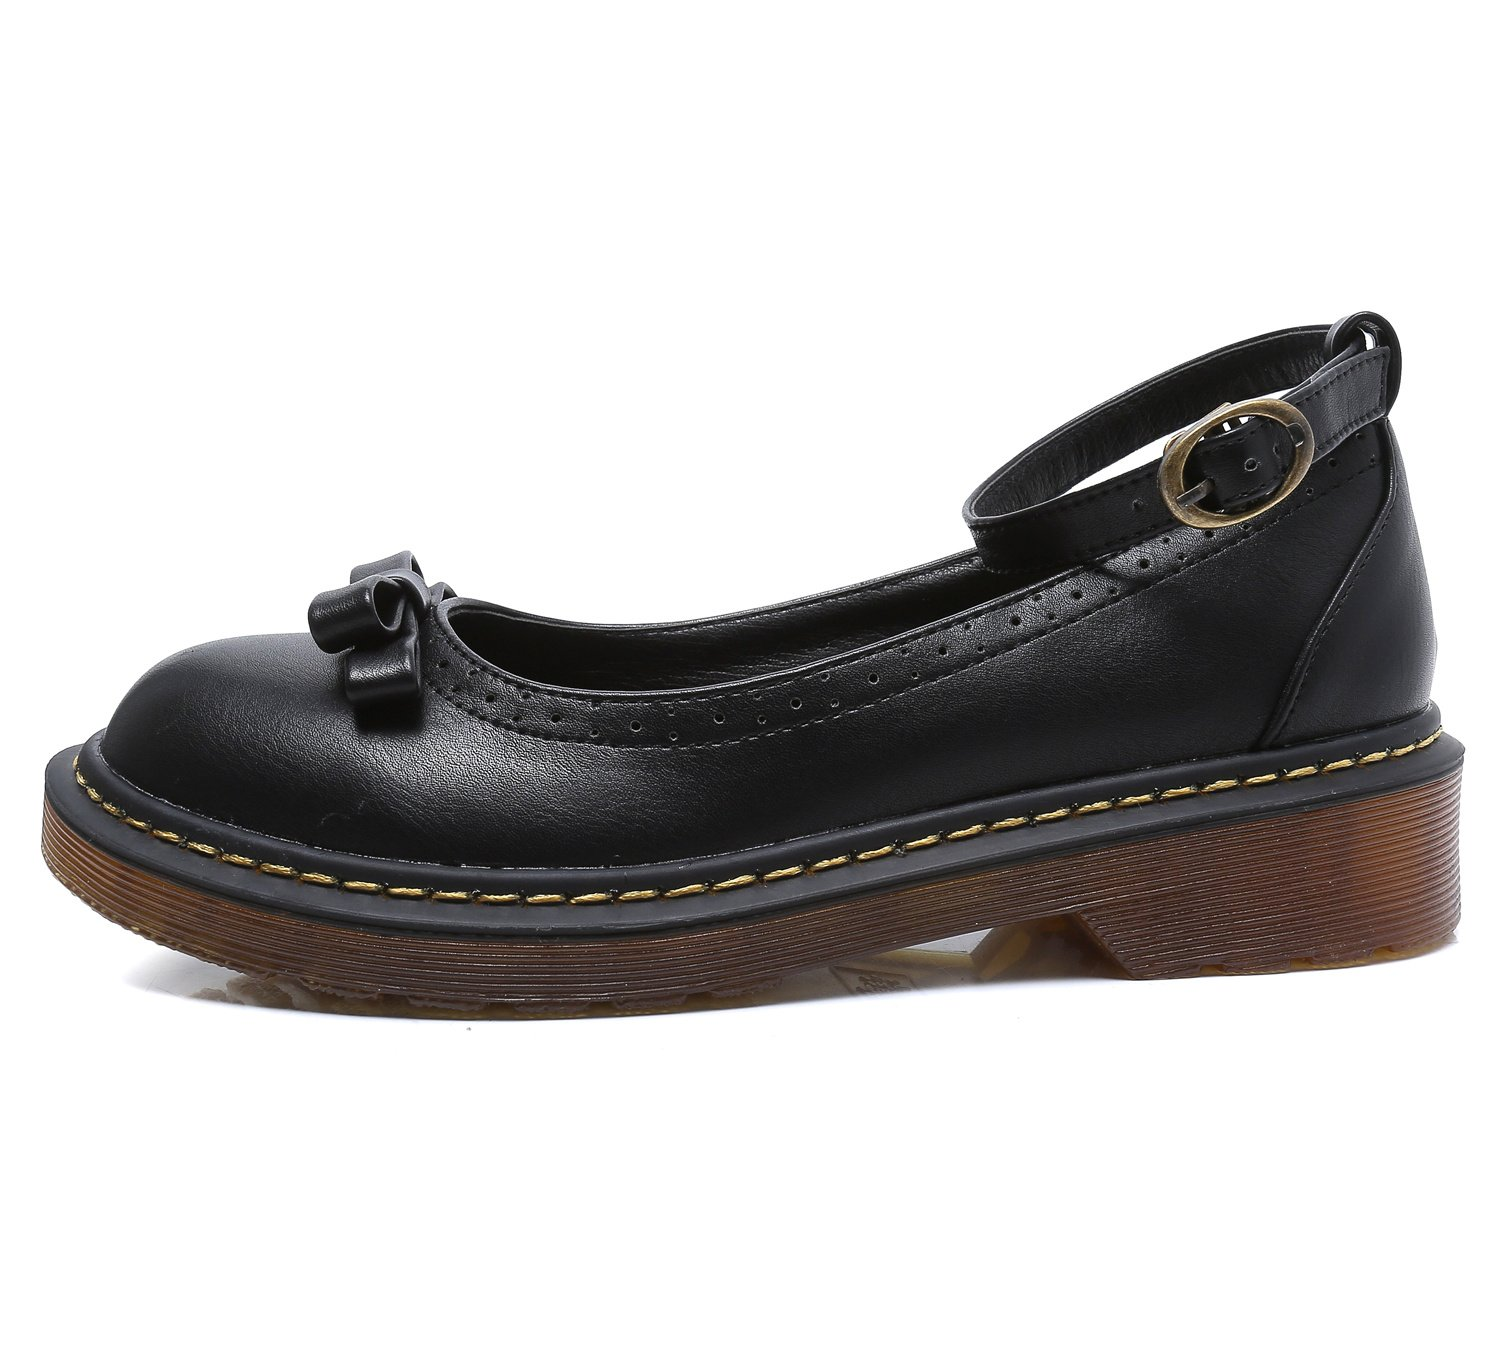 Smilun Lady¡¯s Boat Deck Shoes Dress Formal Driving Shoes Leather for Lady Round Toe Black Size 8 B(M) US by Smilun (Image #2)